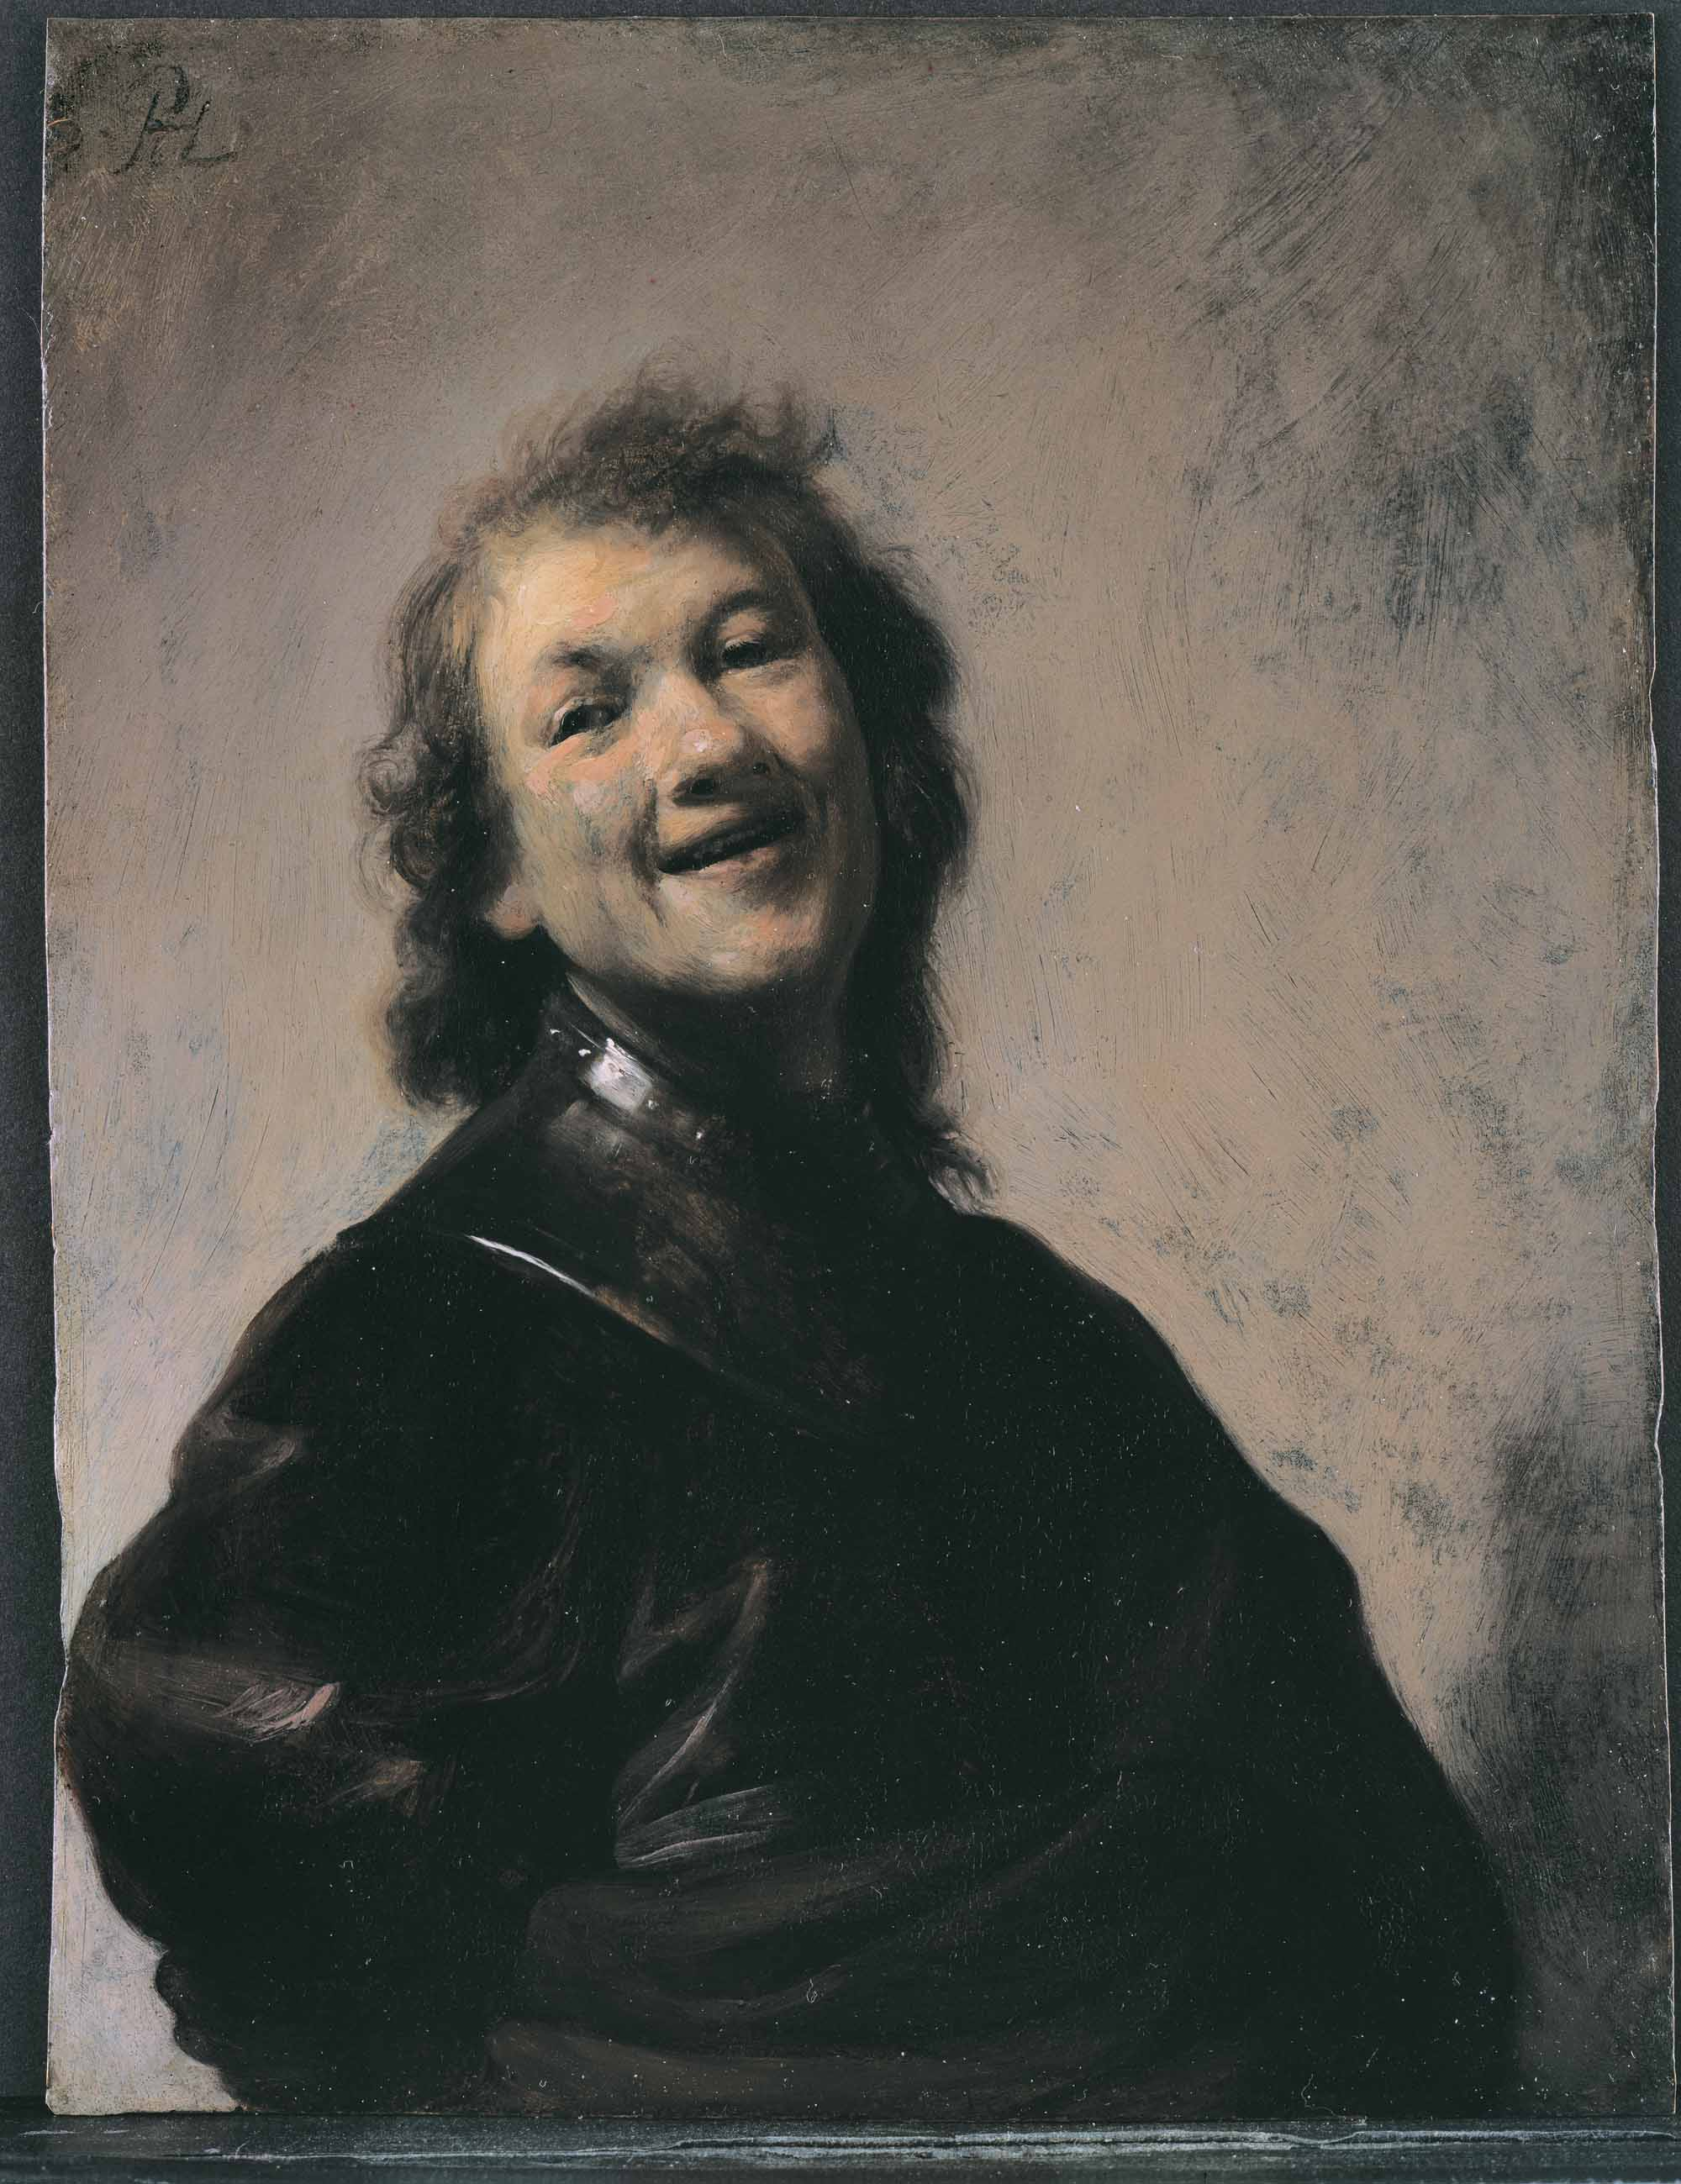 rembrandt essay the cotswolds rembrandt gary schwartz art  285 the cotswolds rembrandt gary schwartz art historian self portrait of rembrandt laughing owner unidentified